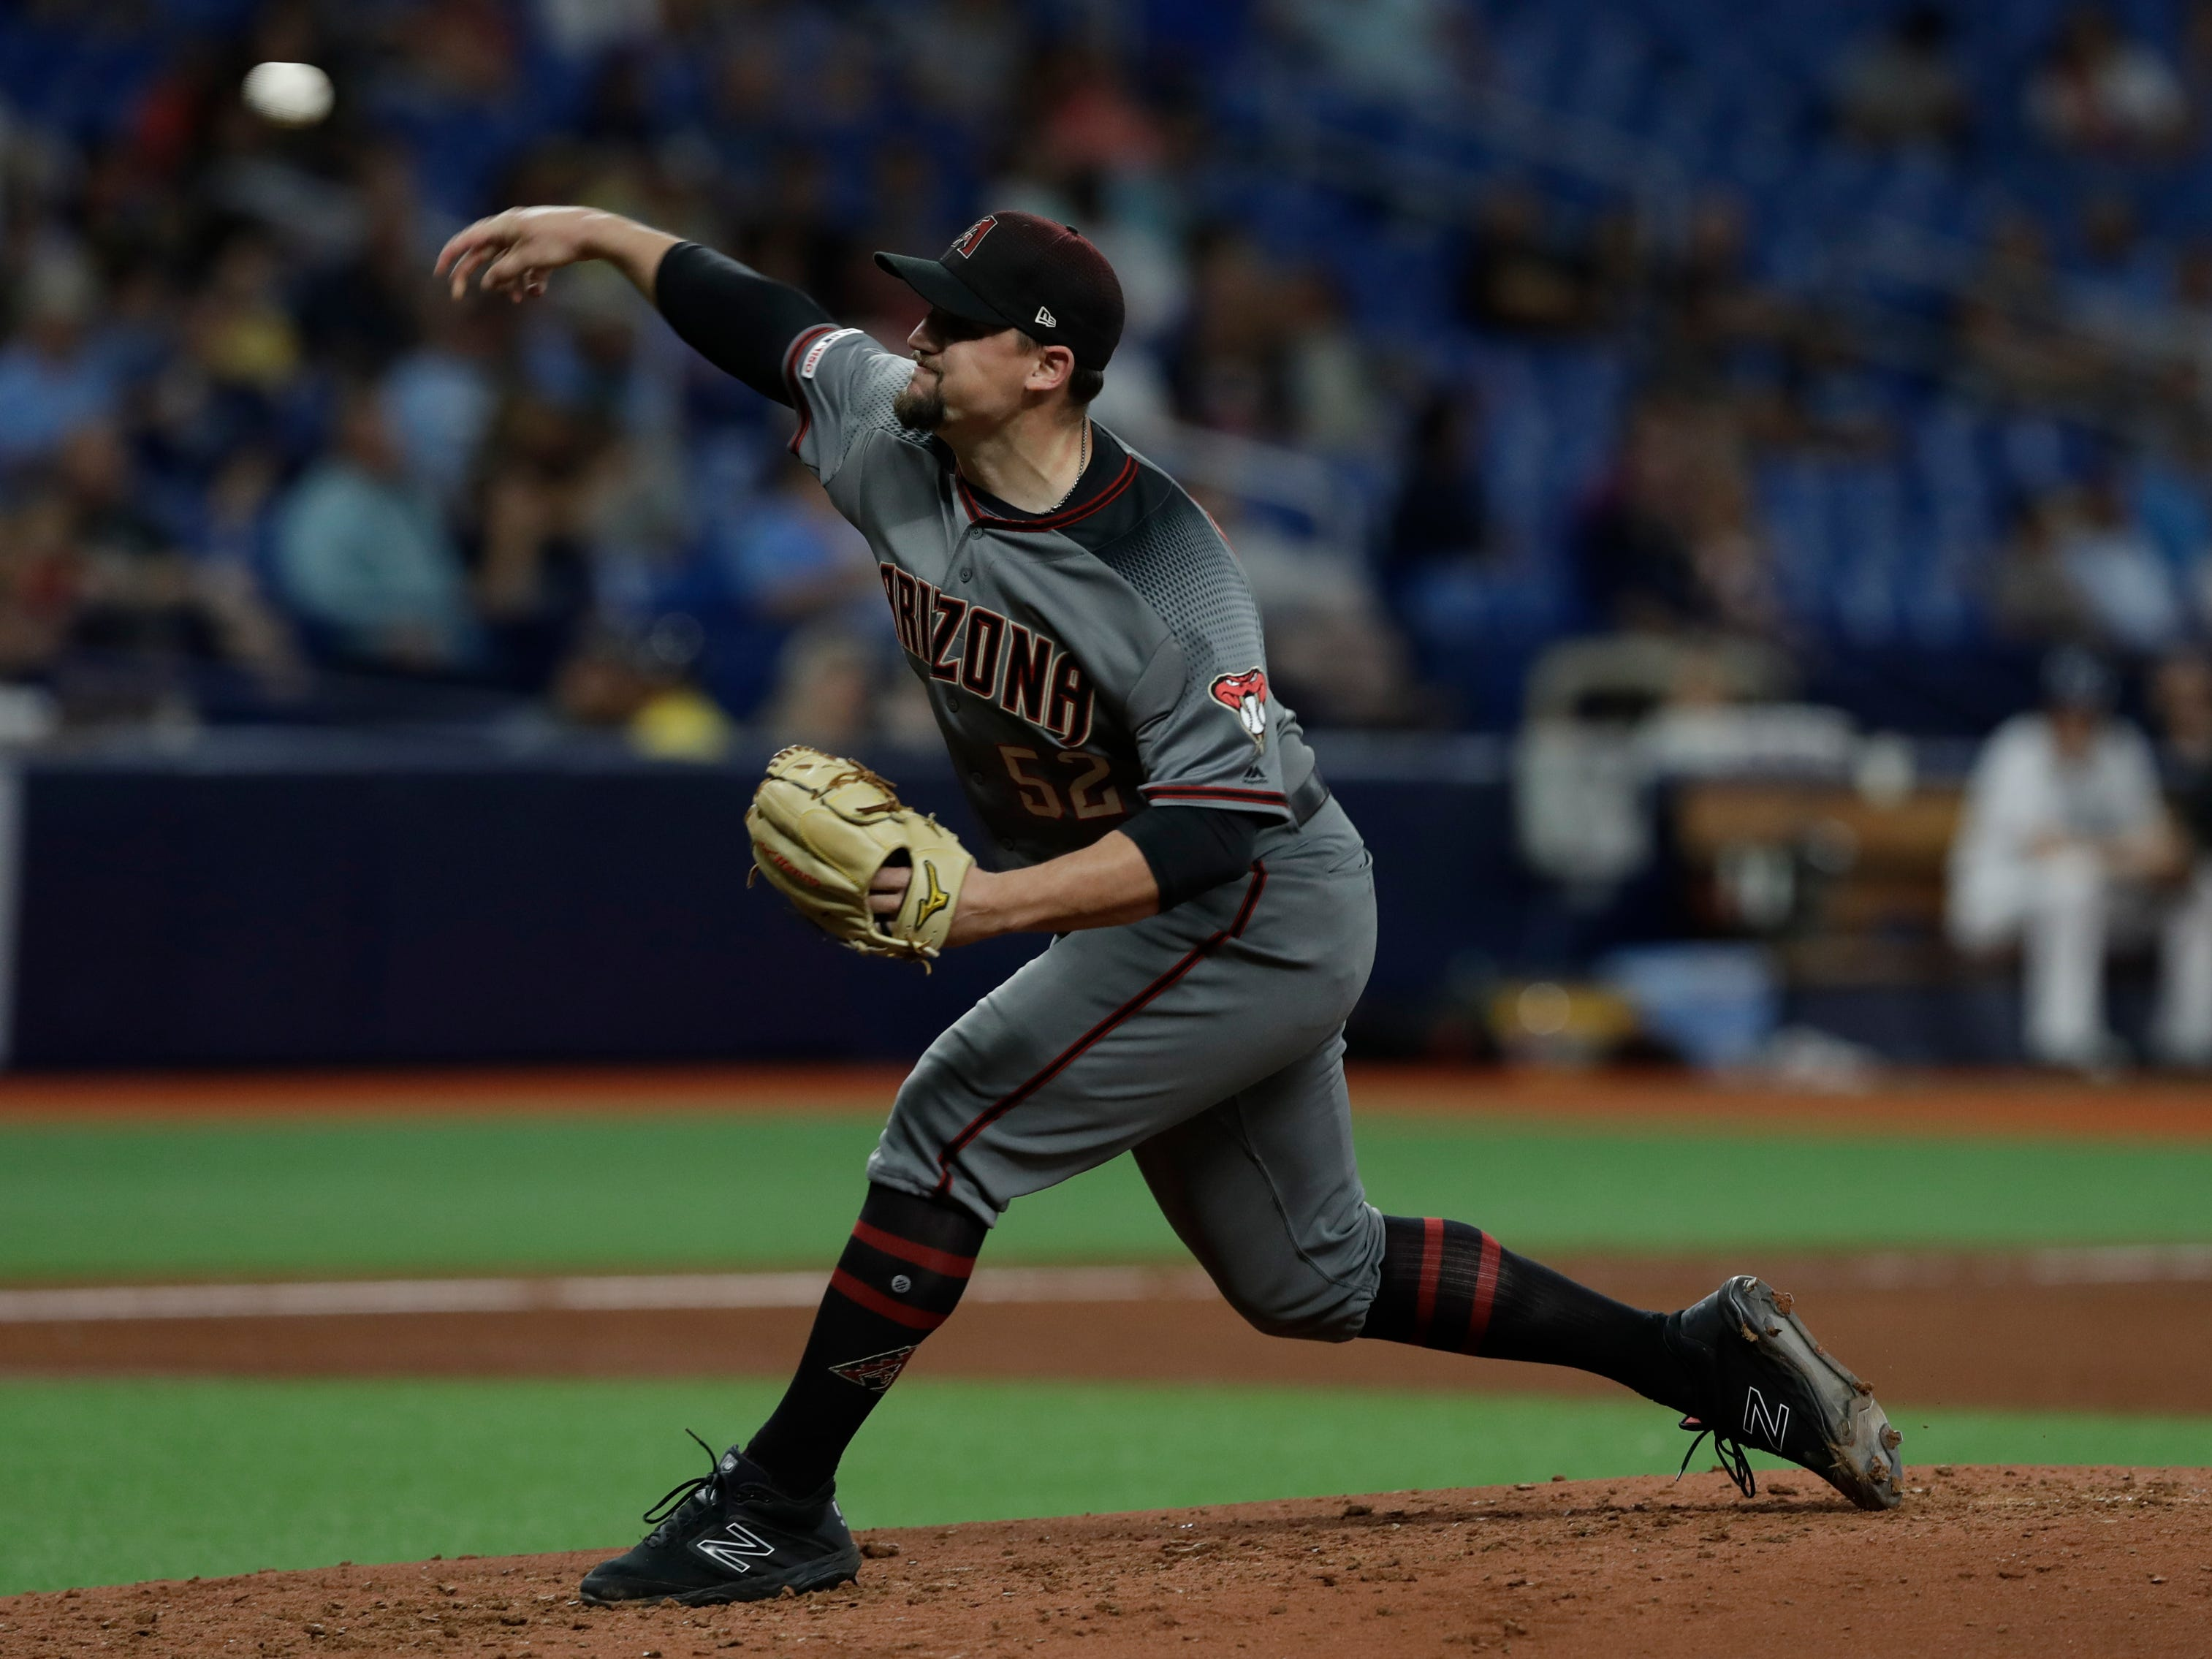 Arizona Diamondbacks pitcher Zack Godley during the fourth inning of a baseball game against the Tampa Bay Rays Monday, May 6, 2019, in St. Petersburg, Fla. (AP Photo/Chris O'Meara)